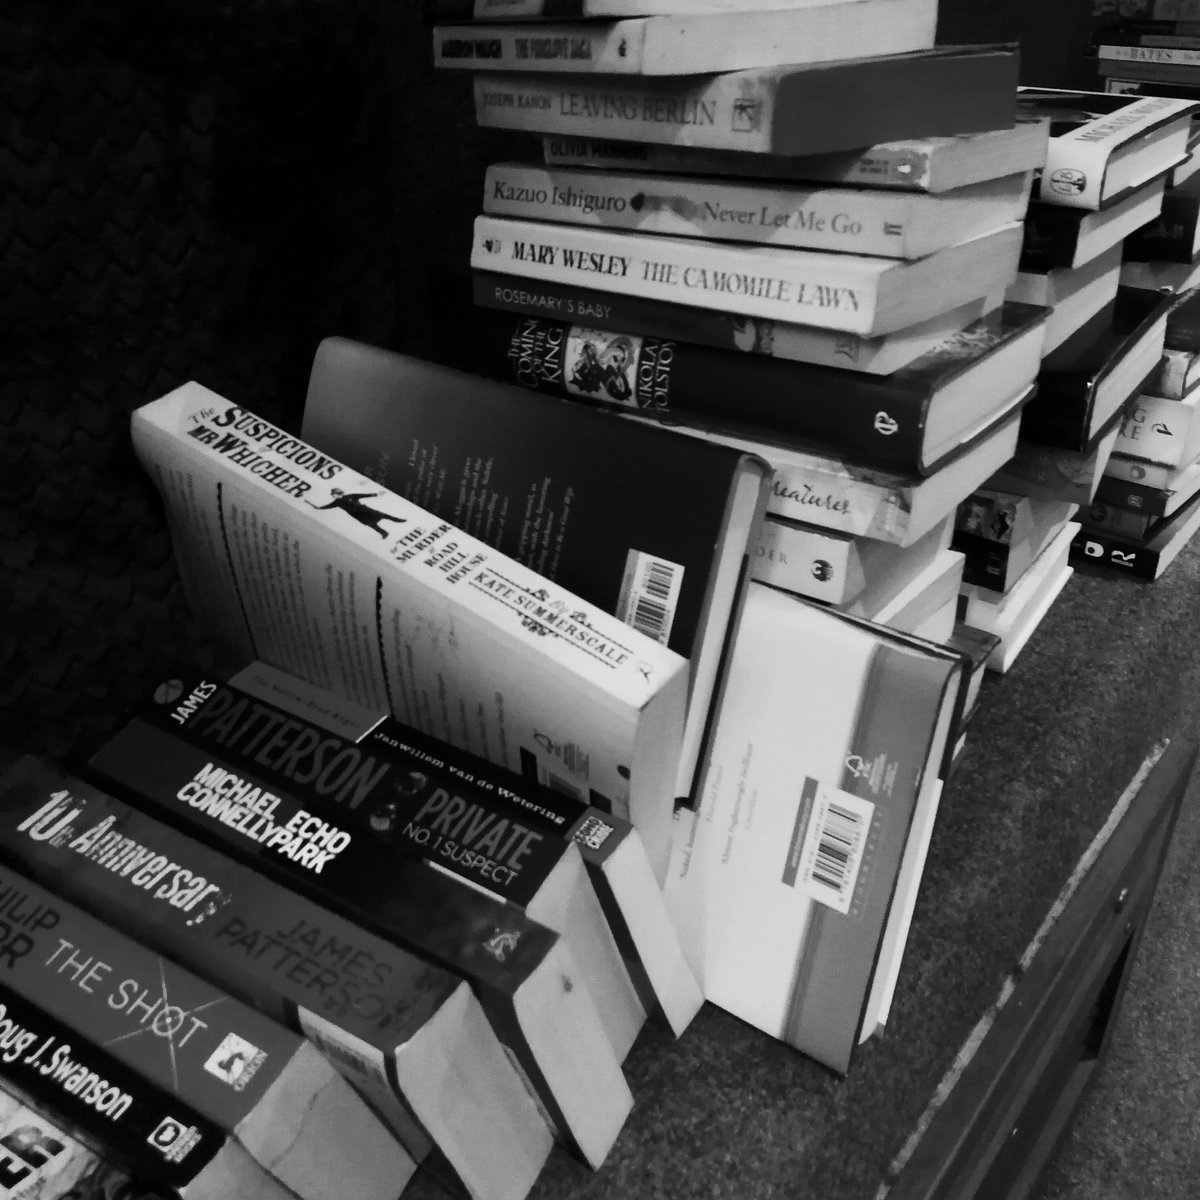 Stock for the Friends of NHCT book swap is starting to pile up . Come along on Saturday 26 January, 10-12.30  with your unwanted books / CDs / DVDs to trade. All proceeds support the work of NHCT!  Recycling, historic buildings and books, what&#39;s not to love? #norwich<br>http://pic.twitter.com/CuMP8lUxJ4